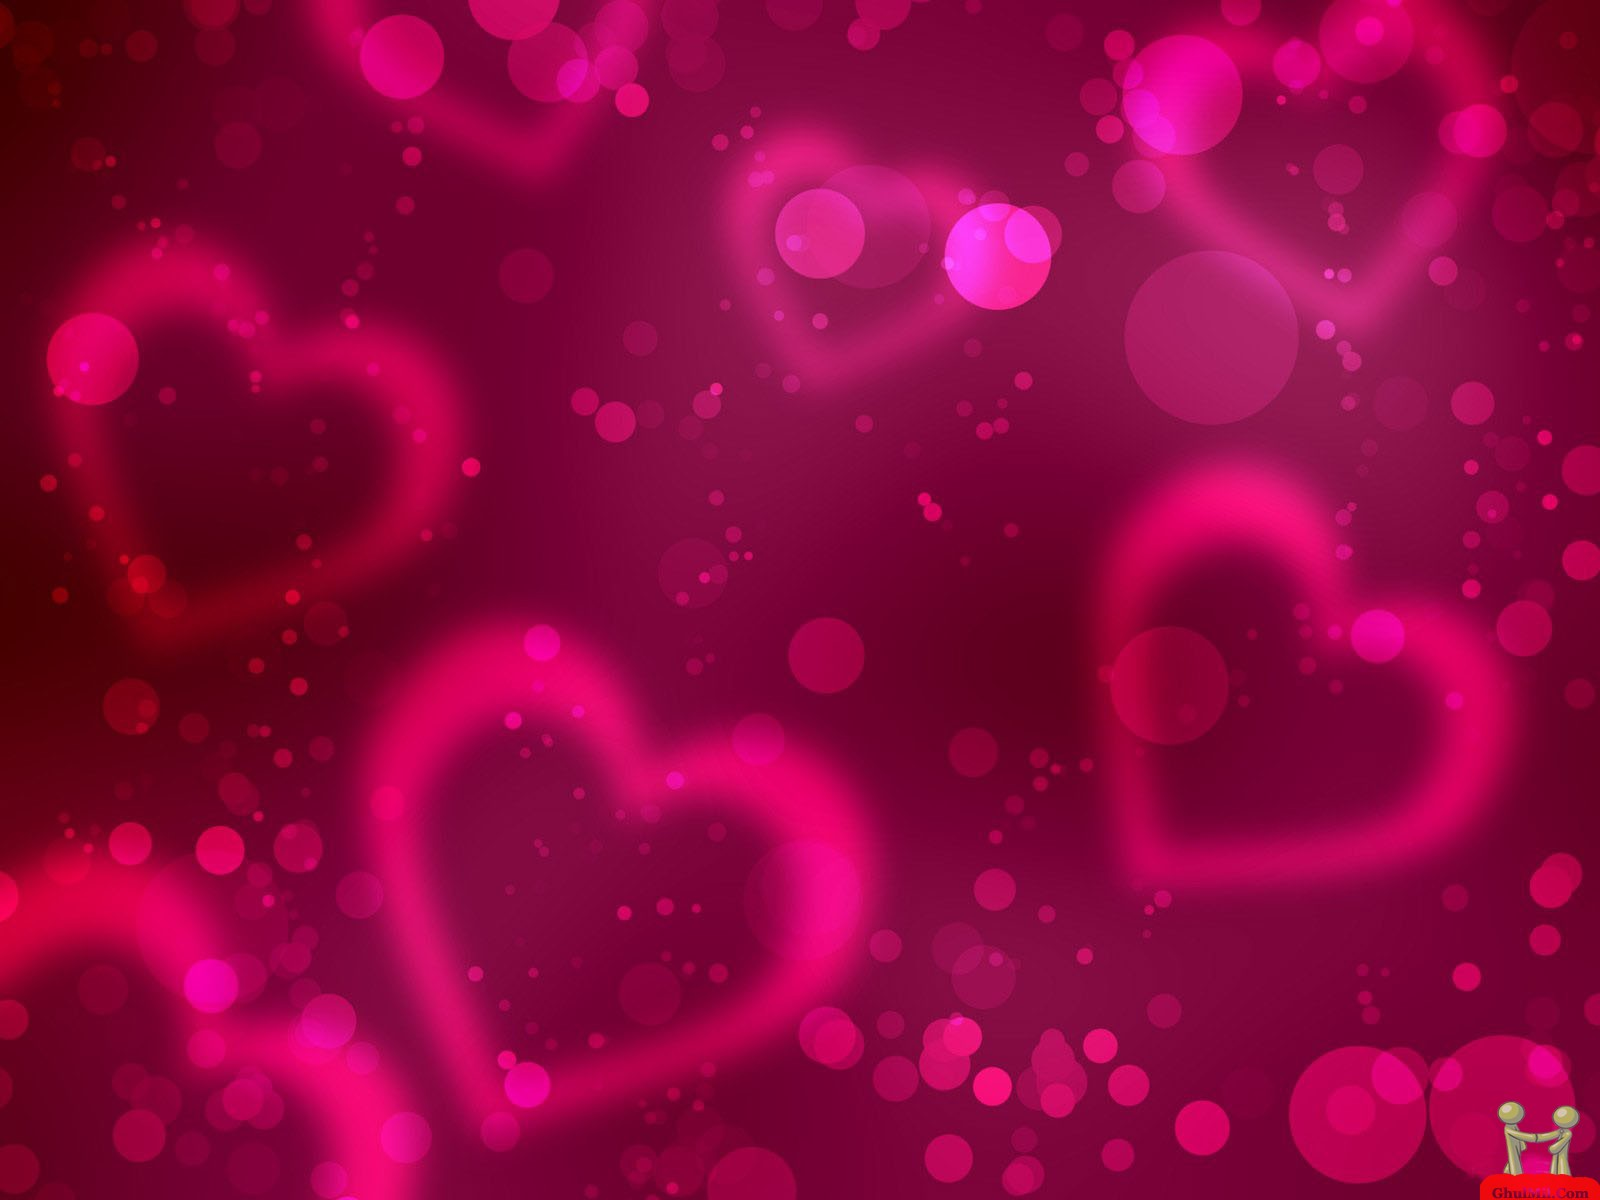 Heart Wallpaper Phone Beautiful Wallpaper 1080p